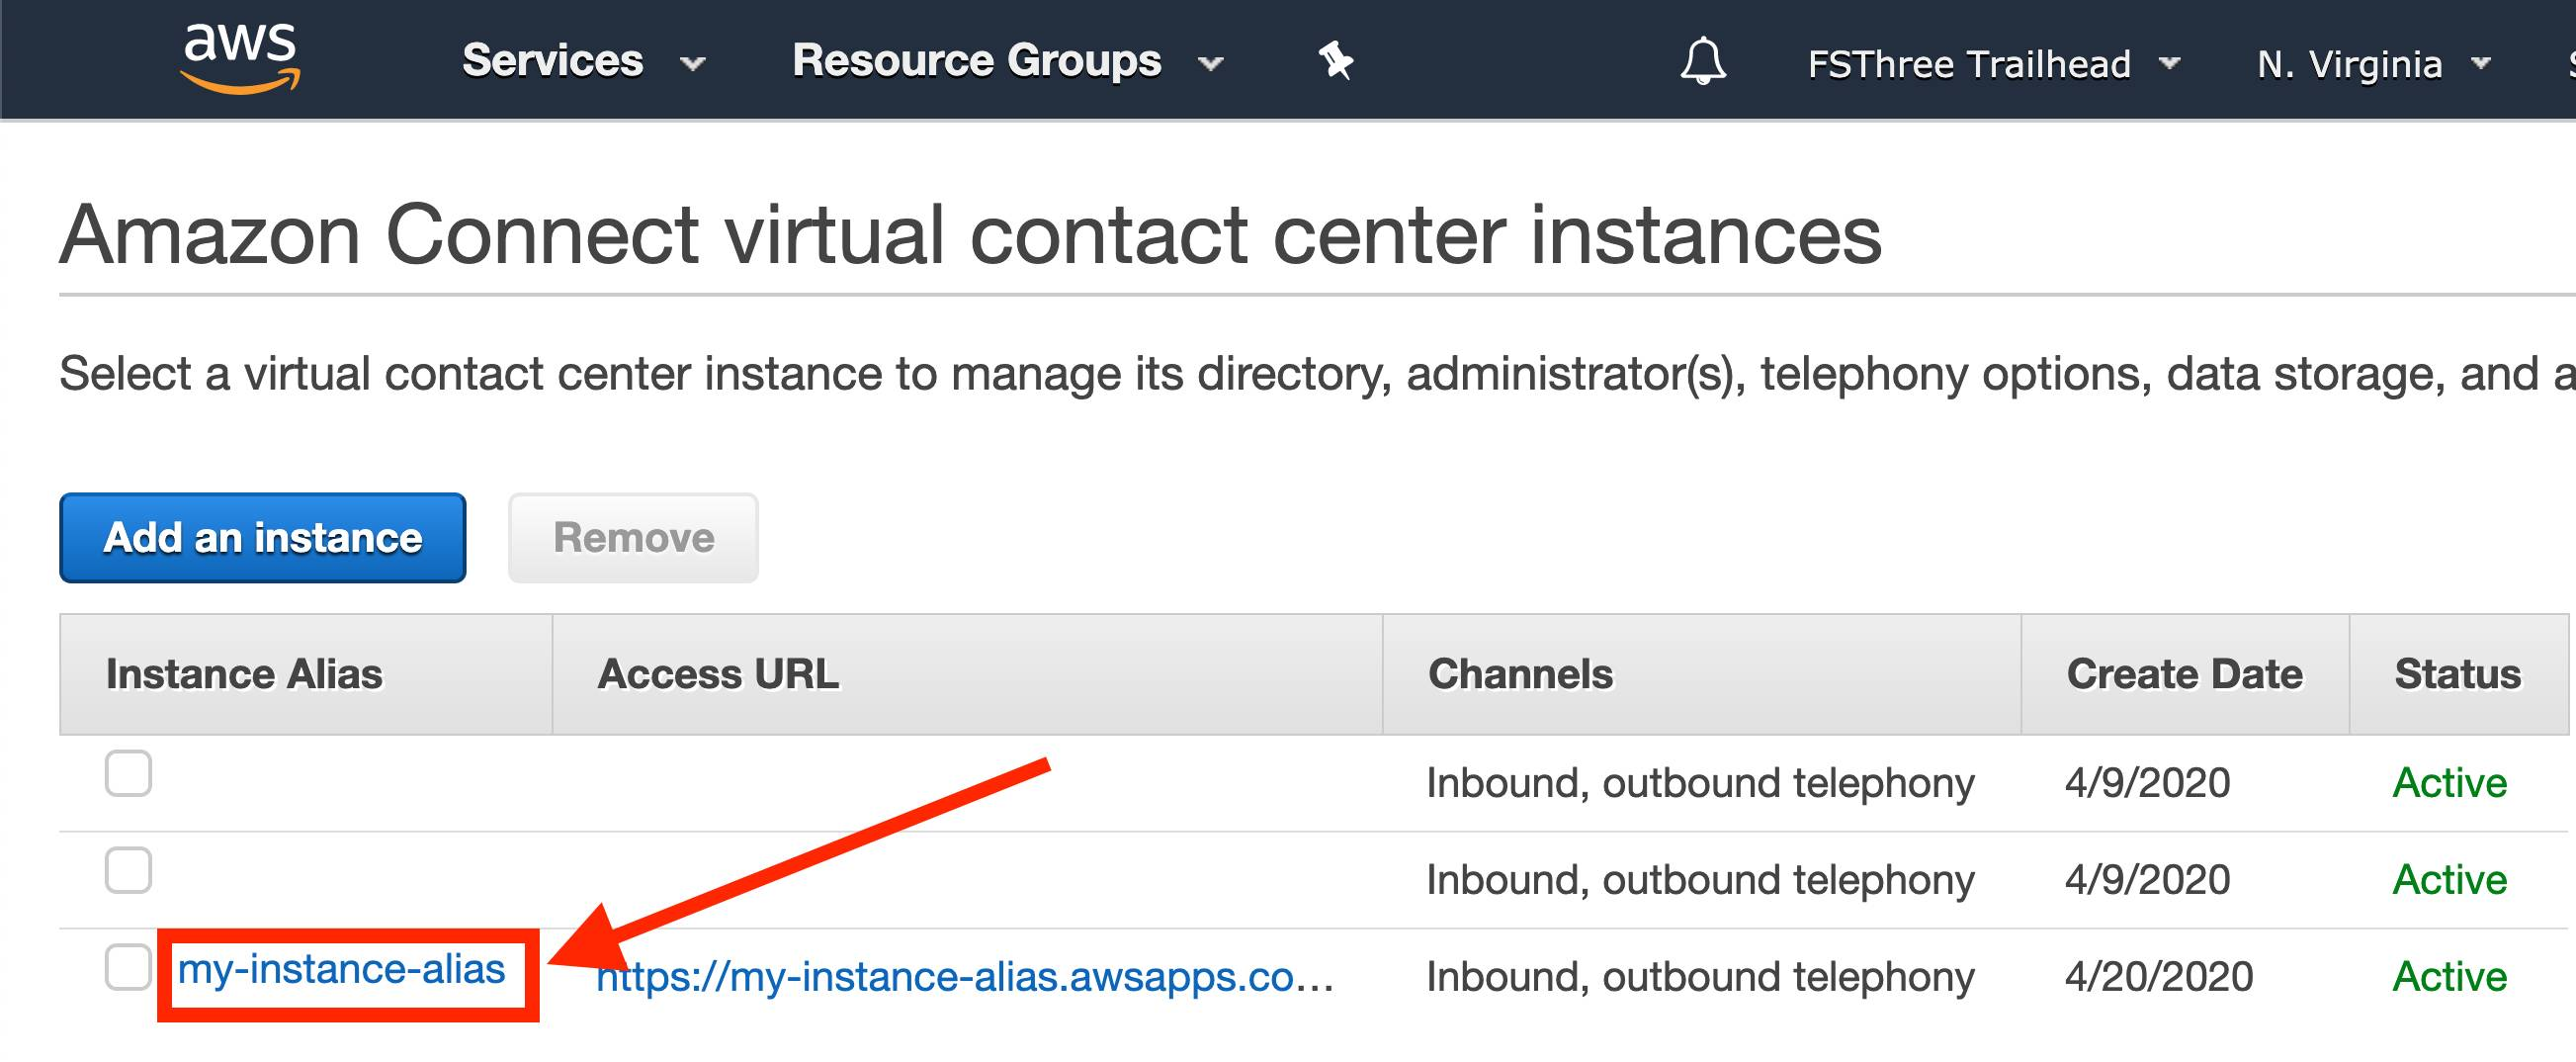 Amazon Connect console with instance alias highlighted by a red box and arrow